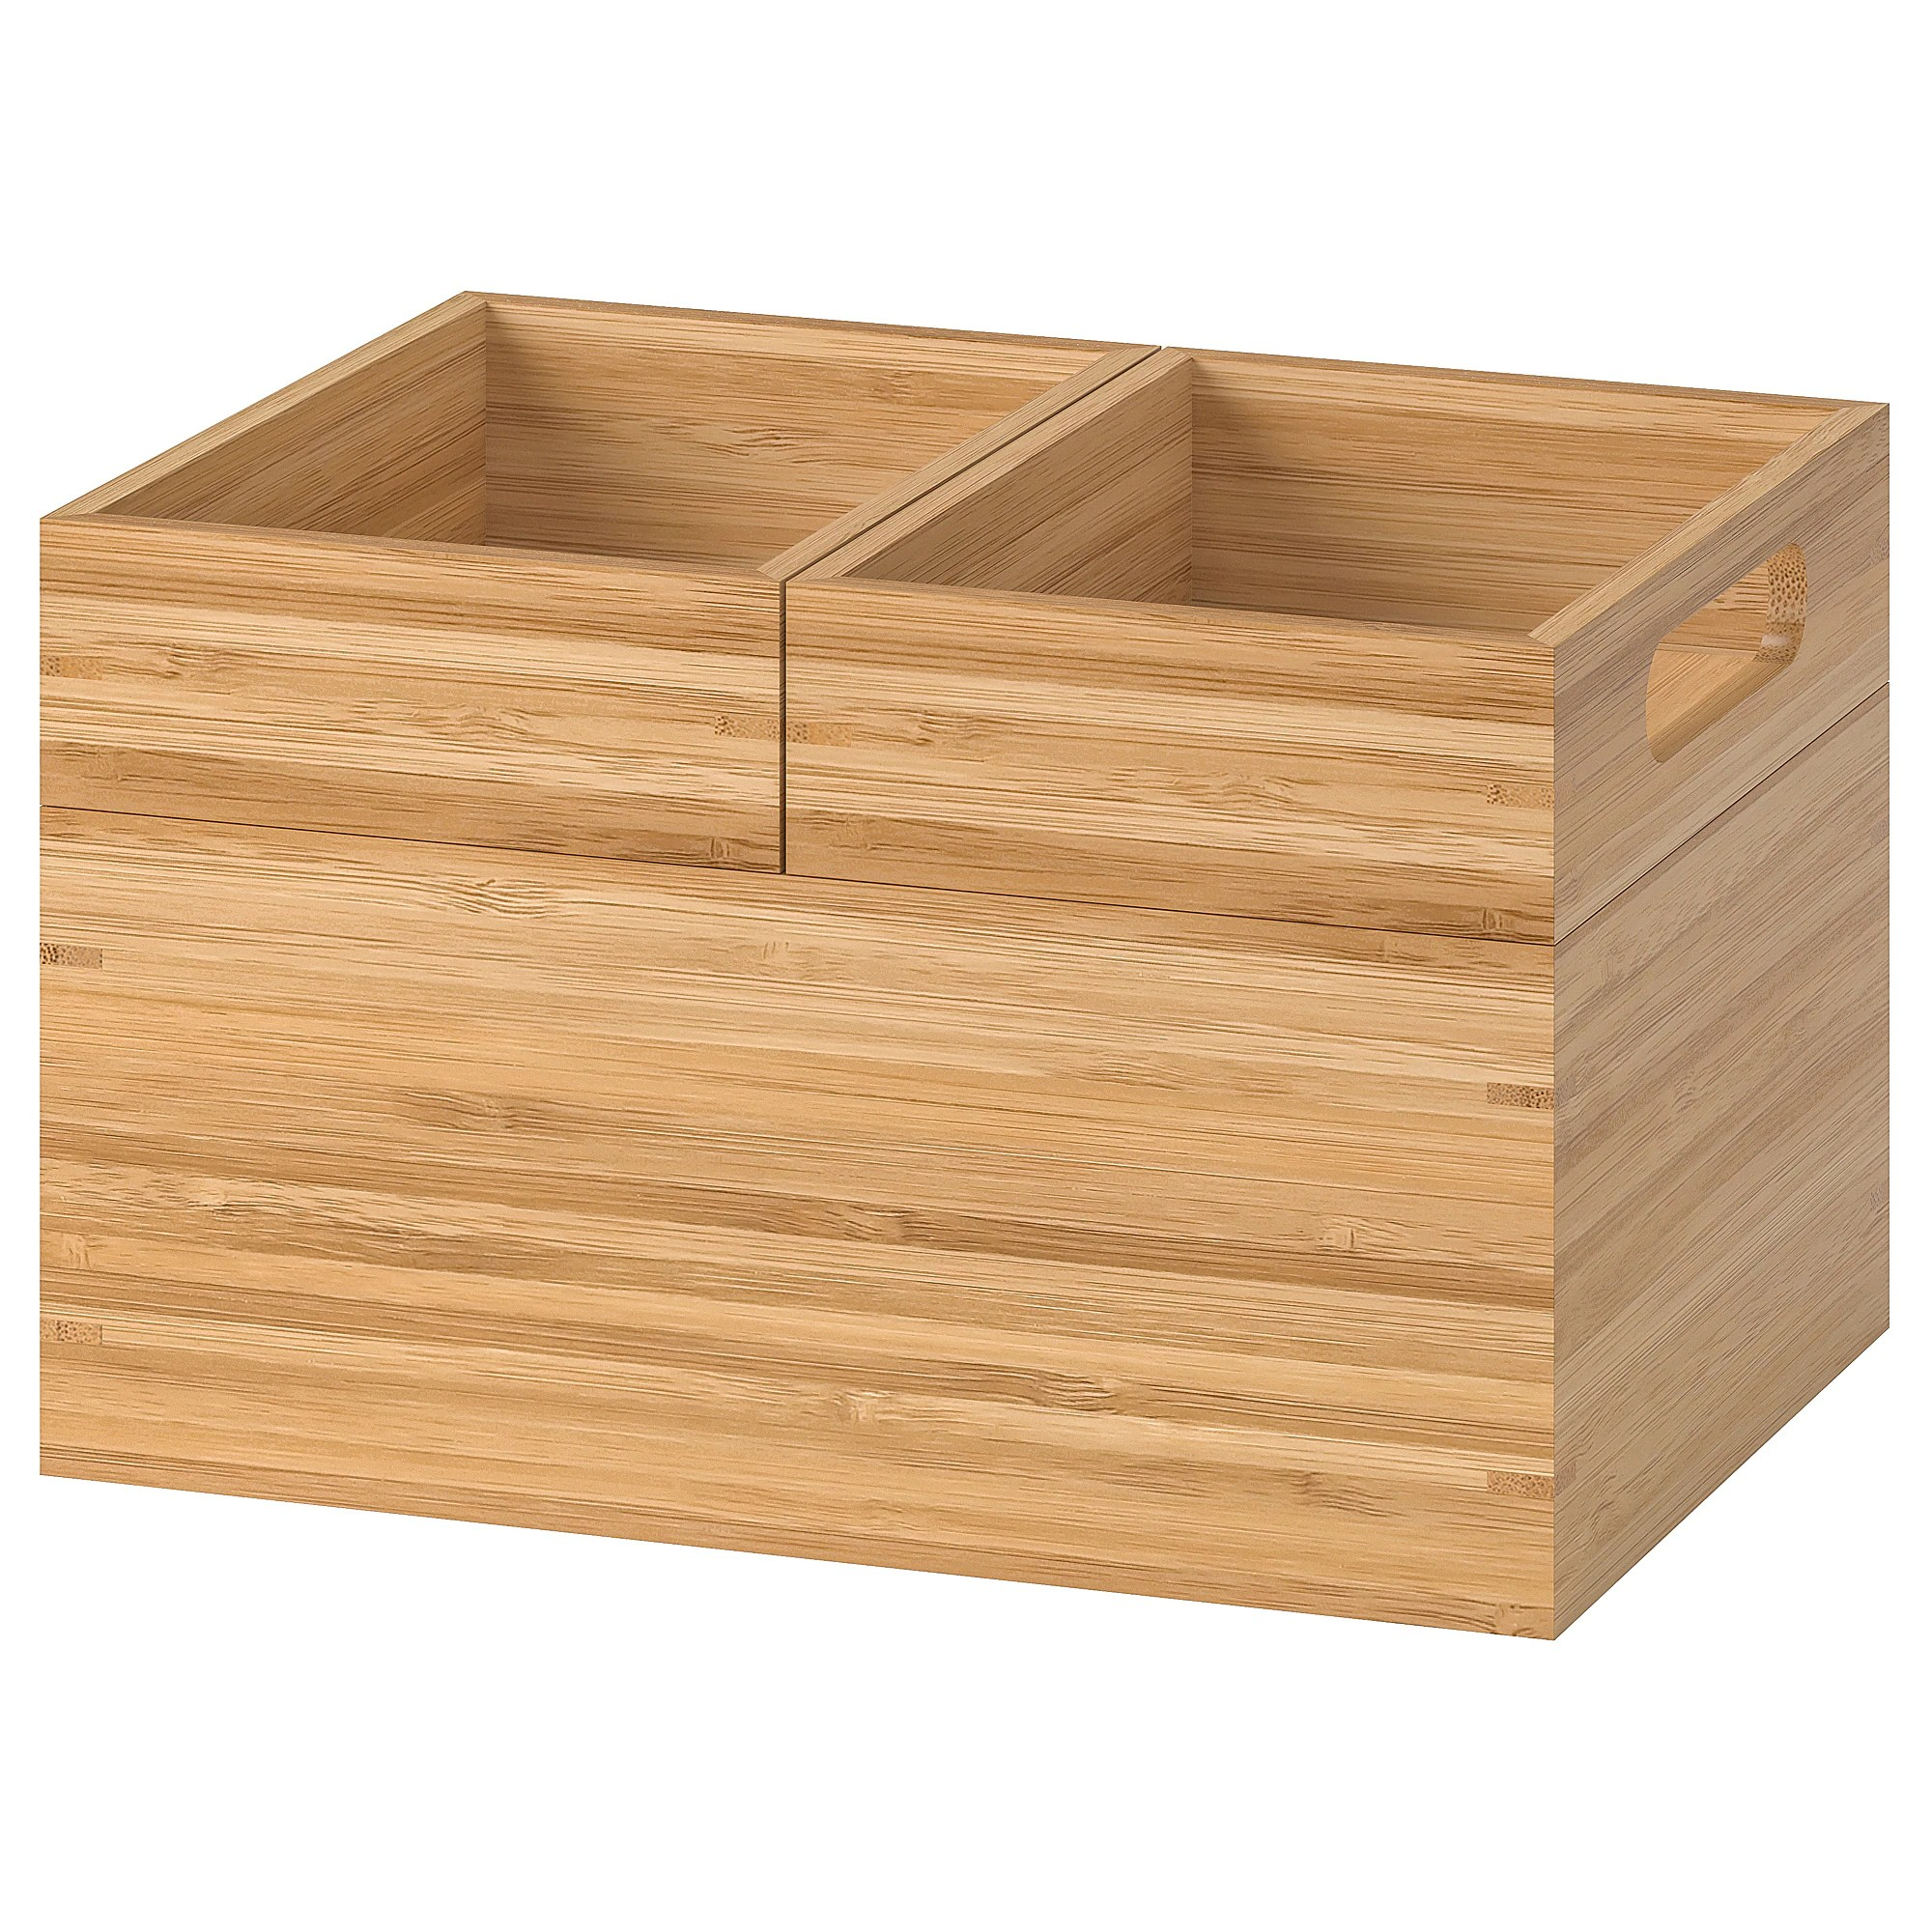 Aktuelle Badezimmer Trends Dragan Box 3er-set - Bambus - Ikea